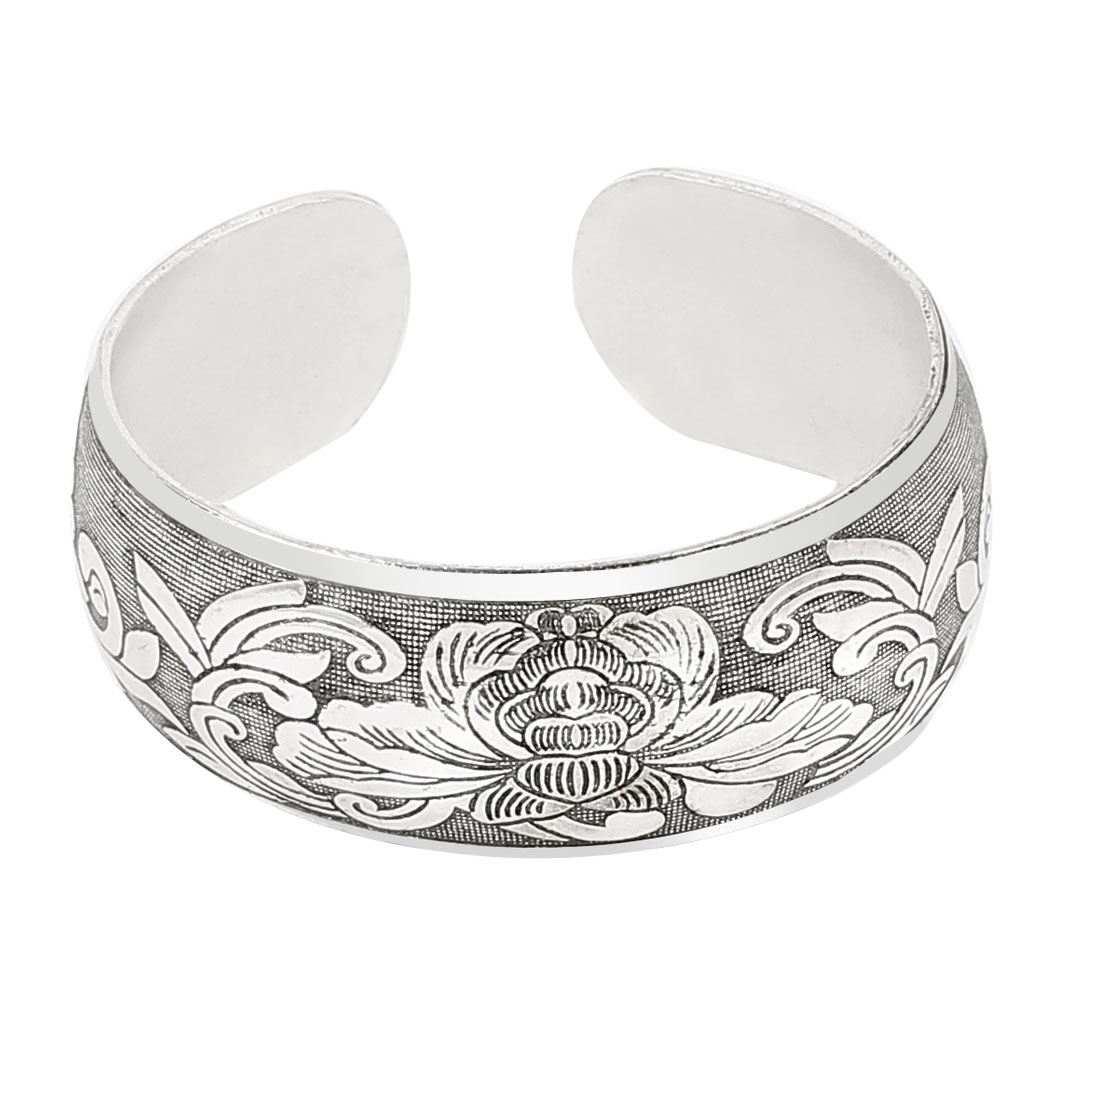 Woman Ethnic Style Carved Florals Pattern Alloy Wide Wrist Cuff Bracelet Bangle